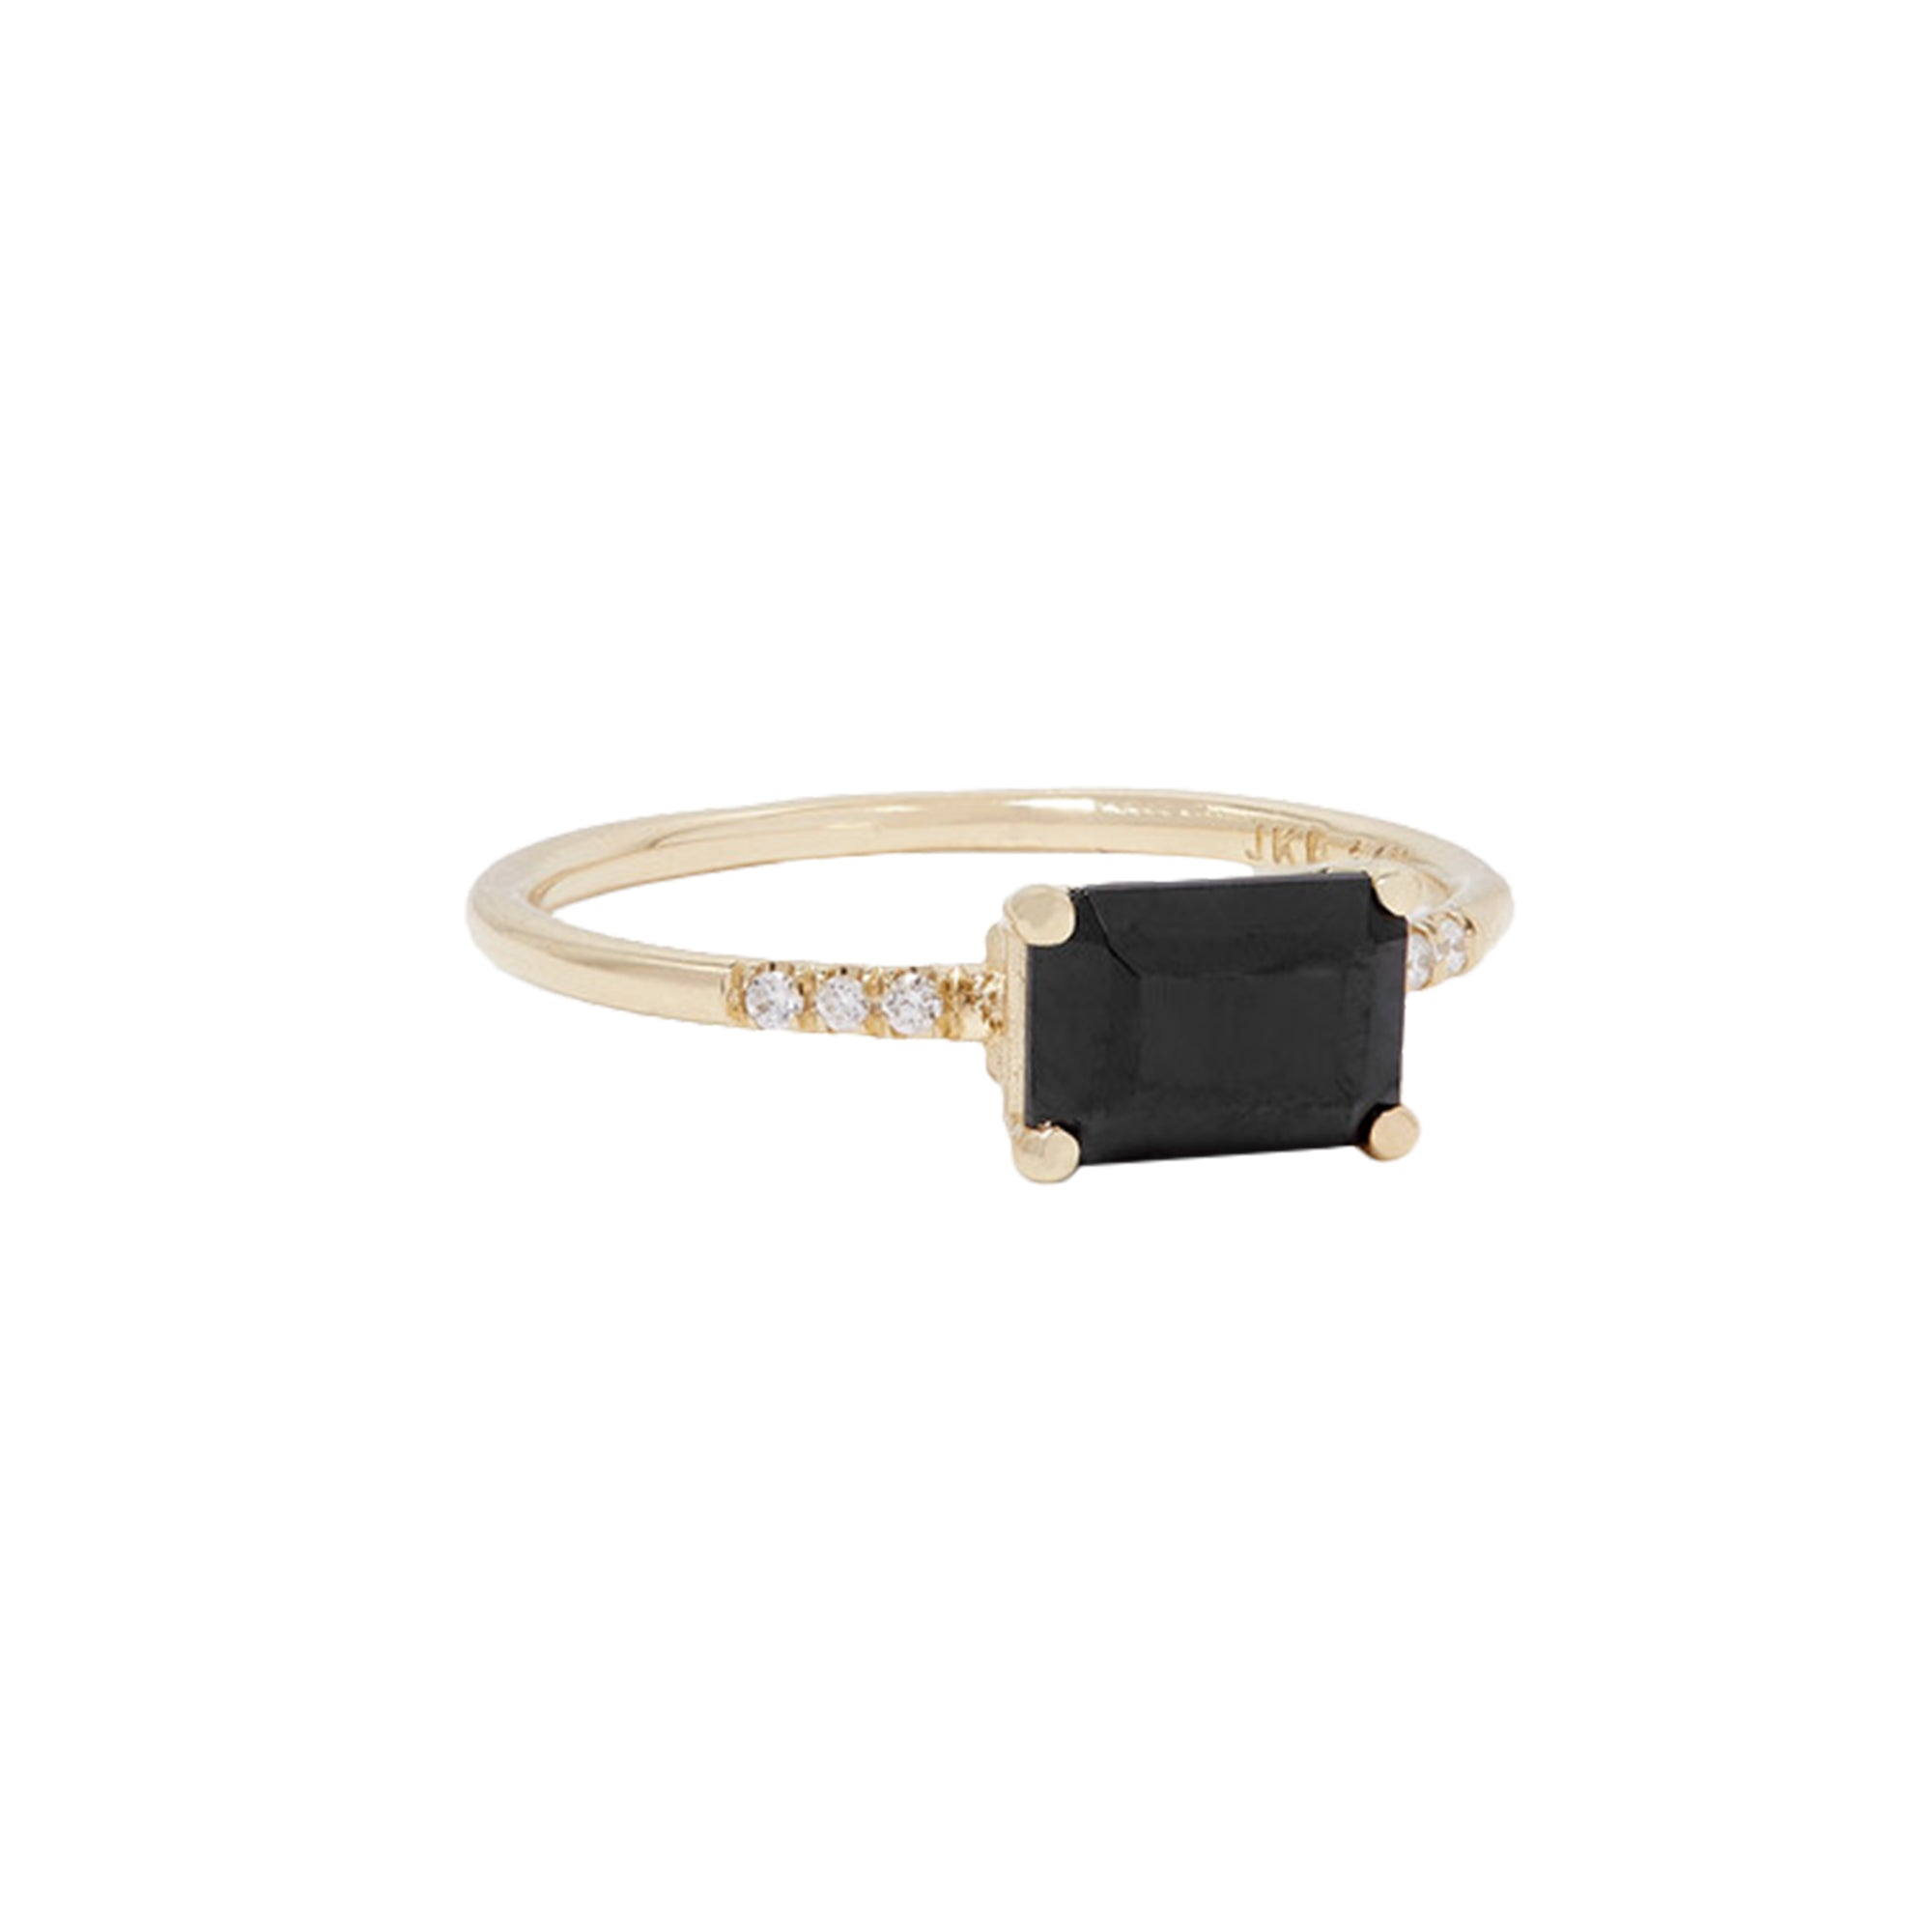 Gold White Diamond East West Onyx Equilibrium Ring by Jennie Kwon for Broken English Jewelry